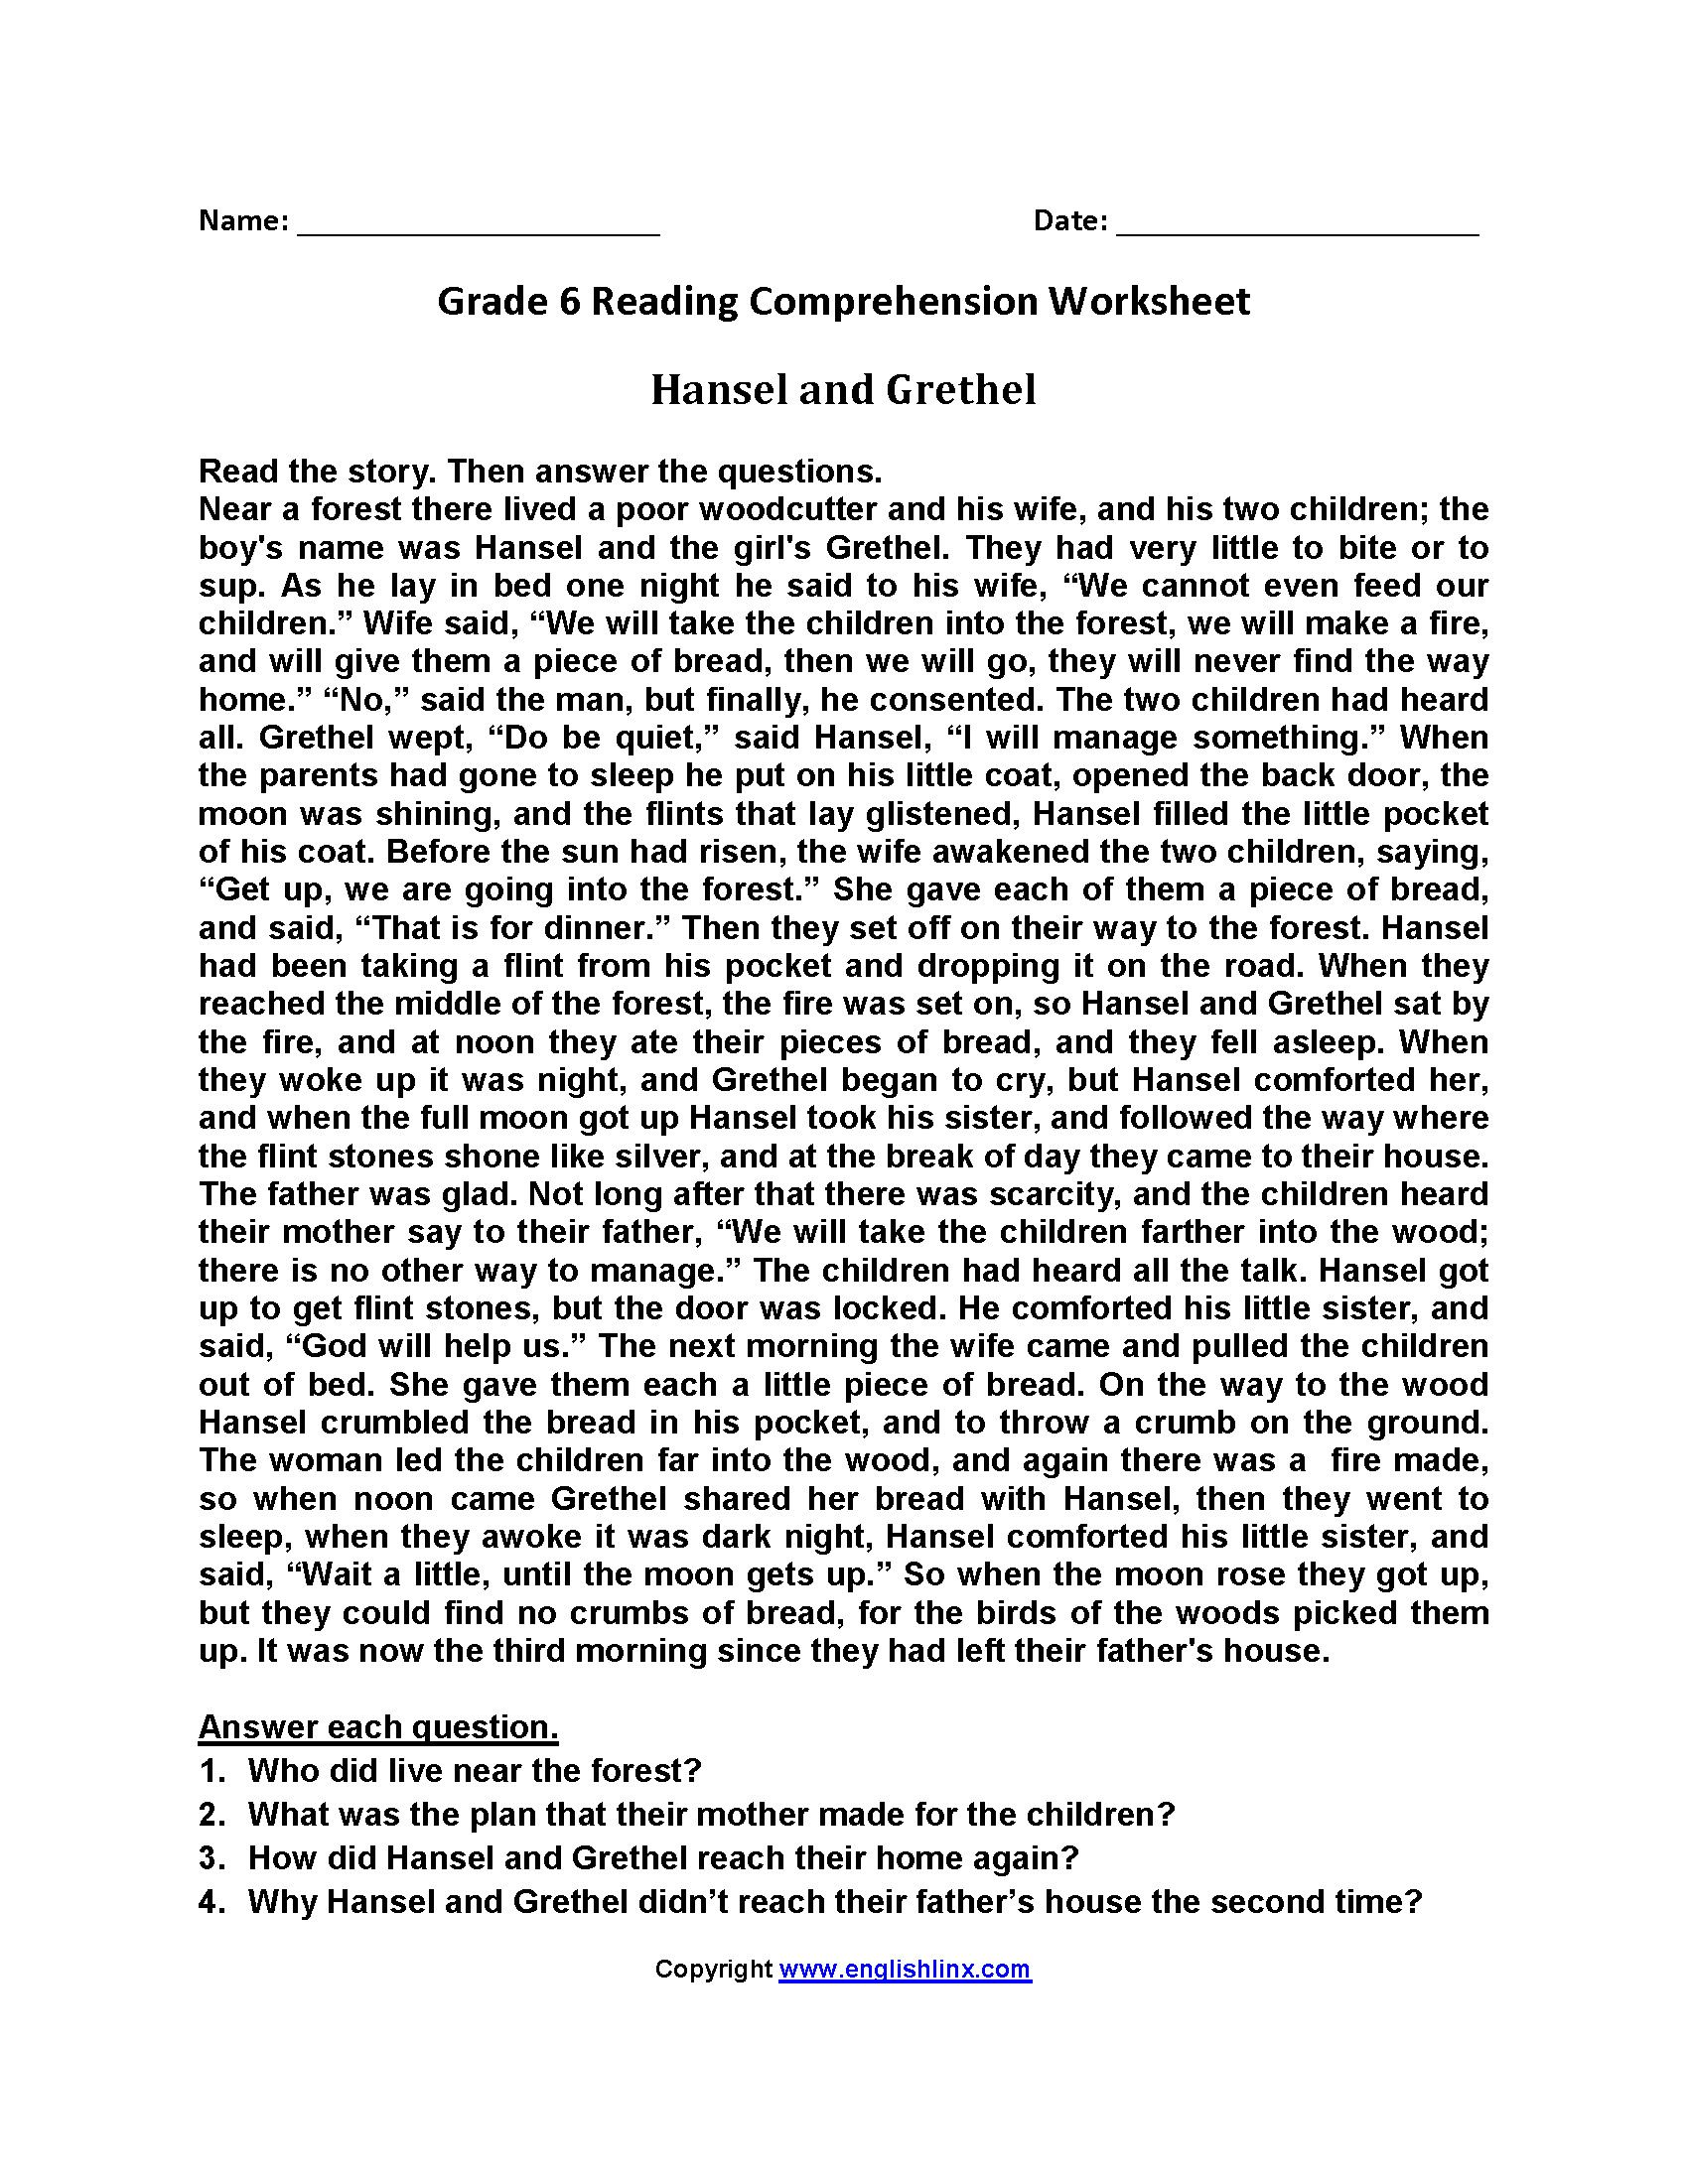 7 Year 6 Reading Comprehension In